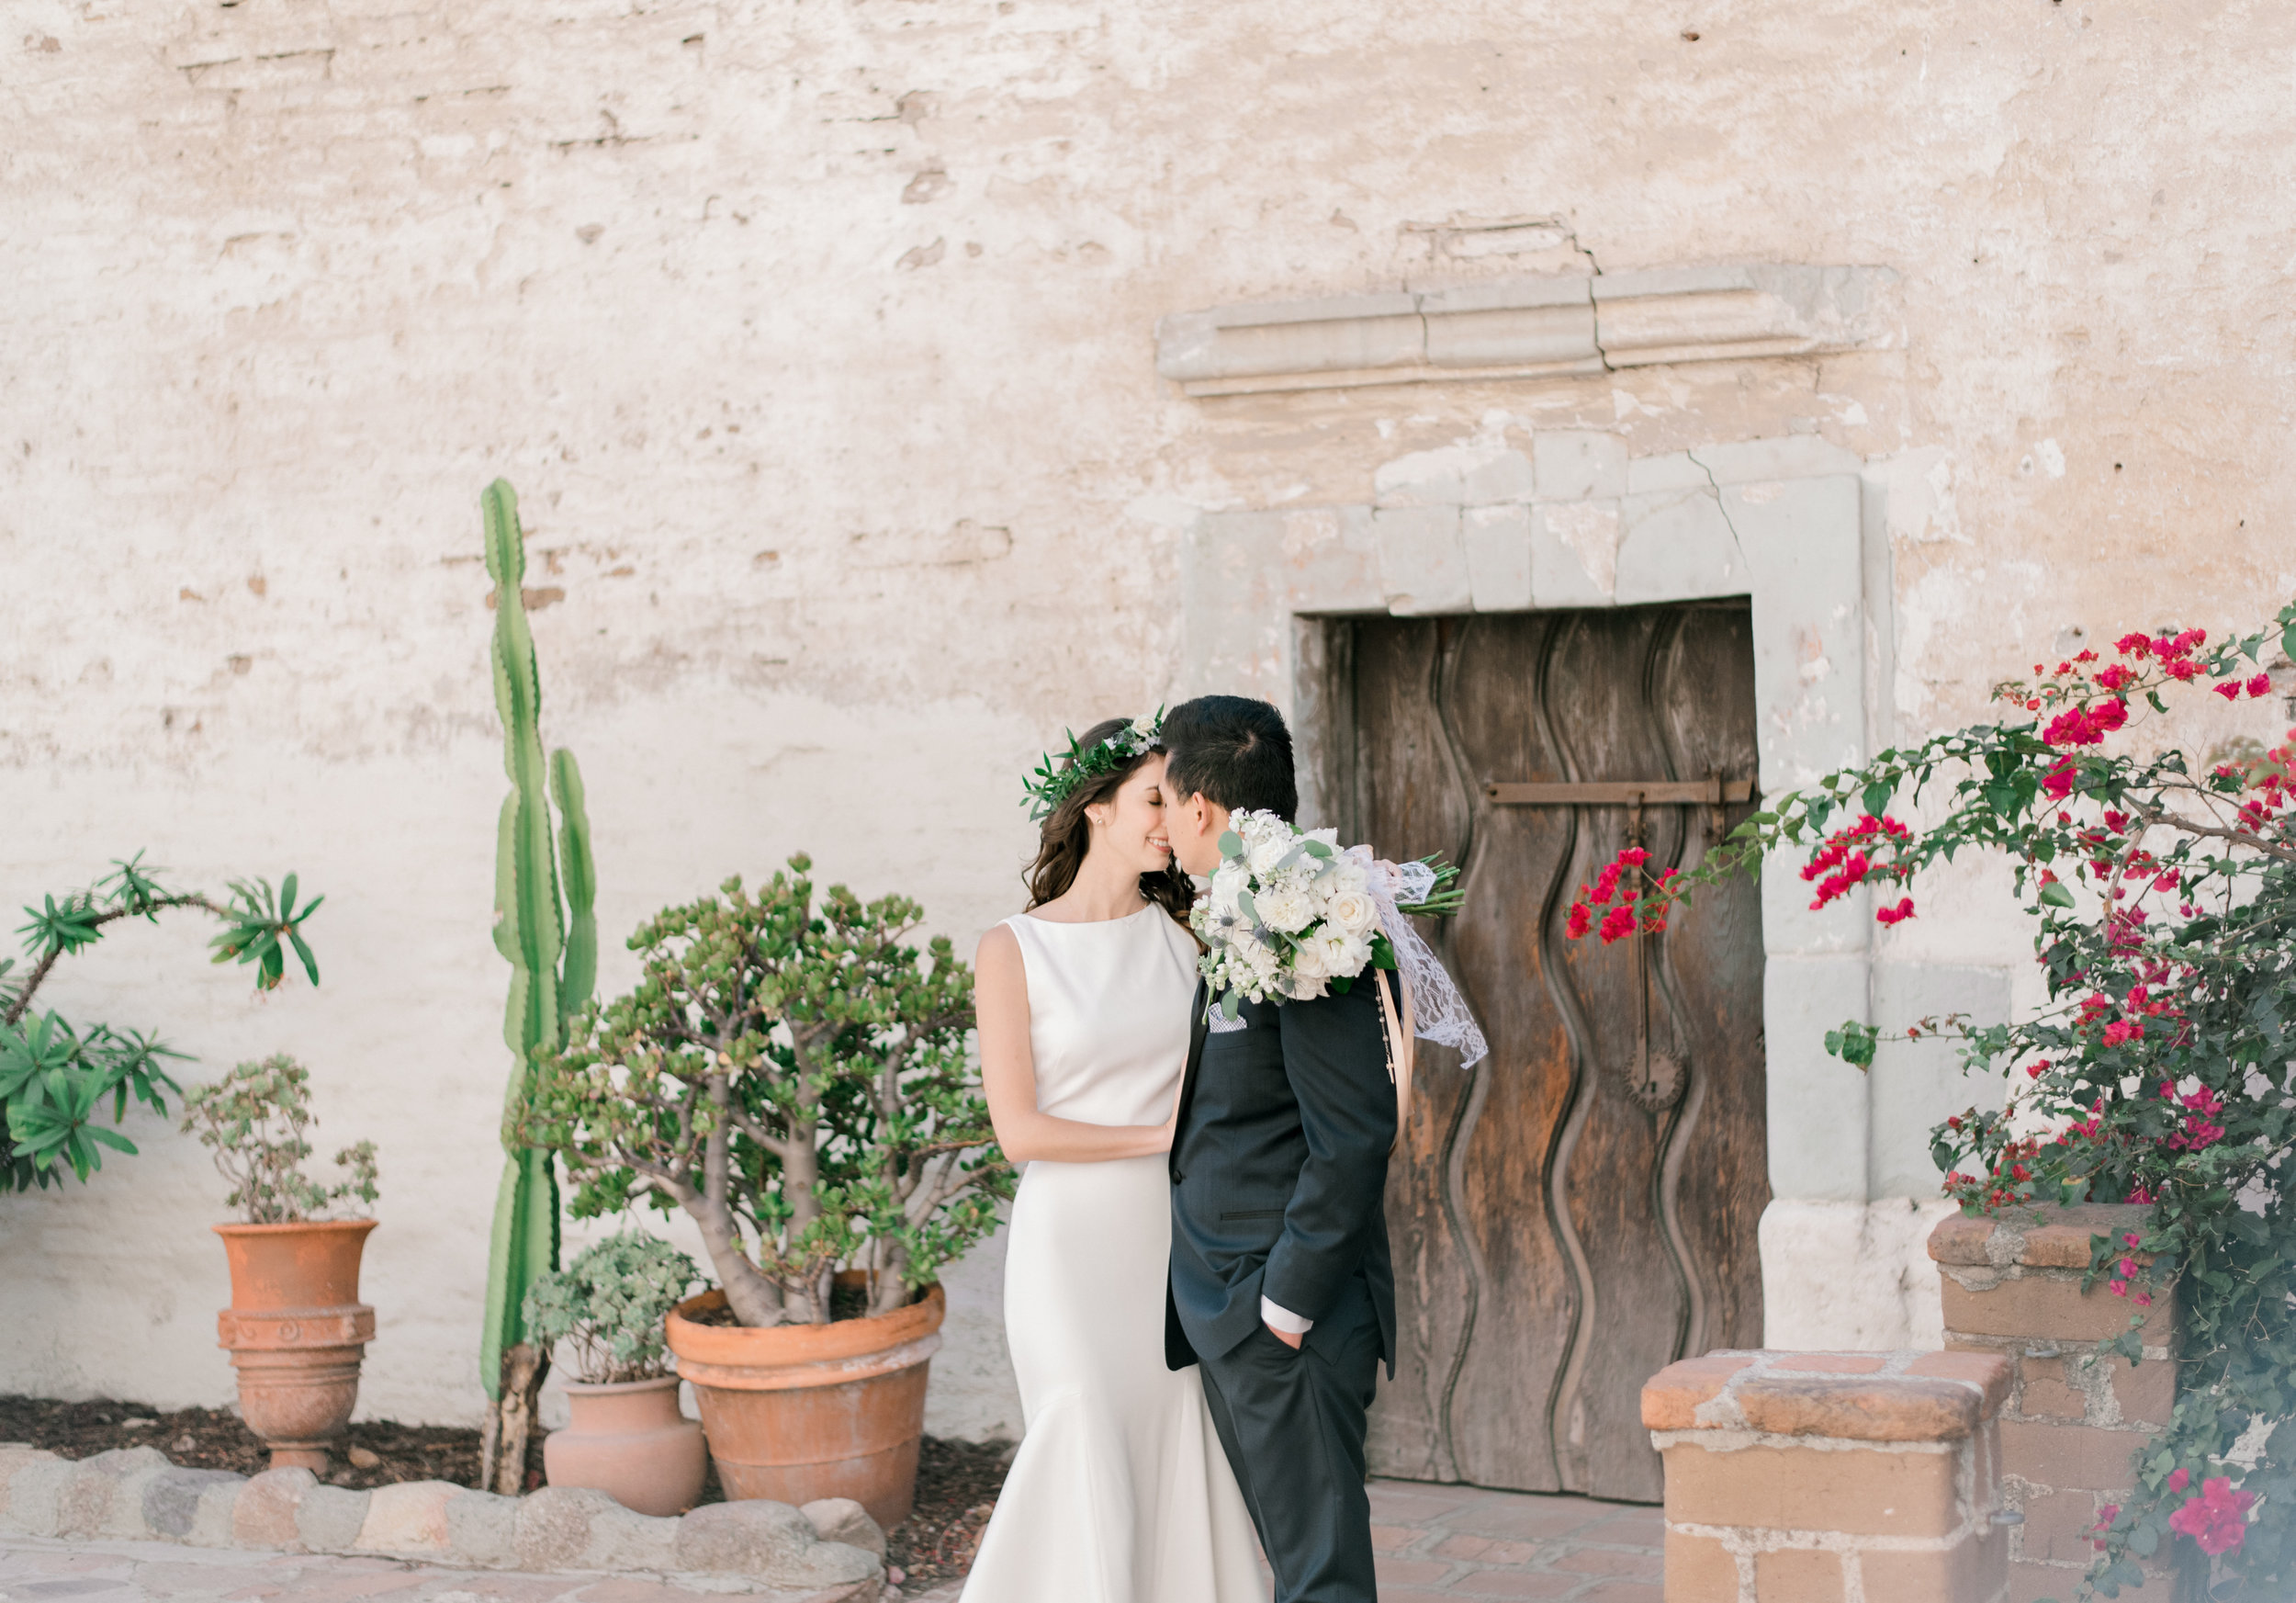 The Popular Collection$2750 - FREE CONSULT & PLANNING SERVICE2 PROFESSIONAL WEDDING PHOTOGRAPHERSONLINE GALLERY OF HIGH RESOLUTION IMAGESPRINTING RIGHTS OF ALL IMAGES1000 PROFESSIONAL EDITED IMAGES8 HOURS OF WEDDING DAY COVERAGE